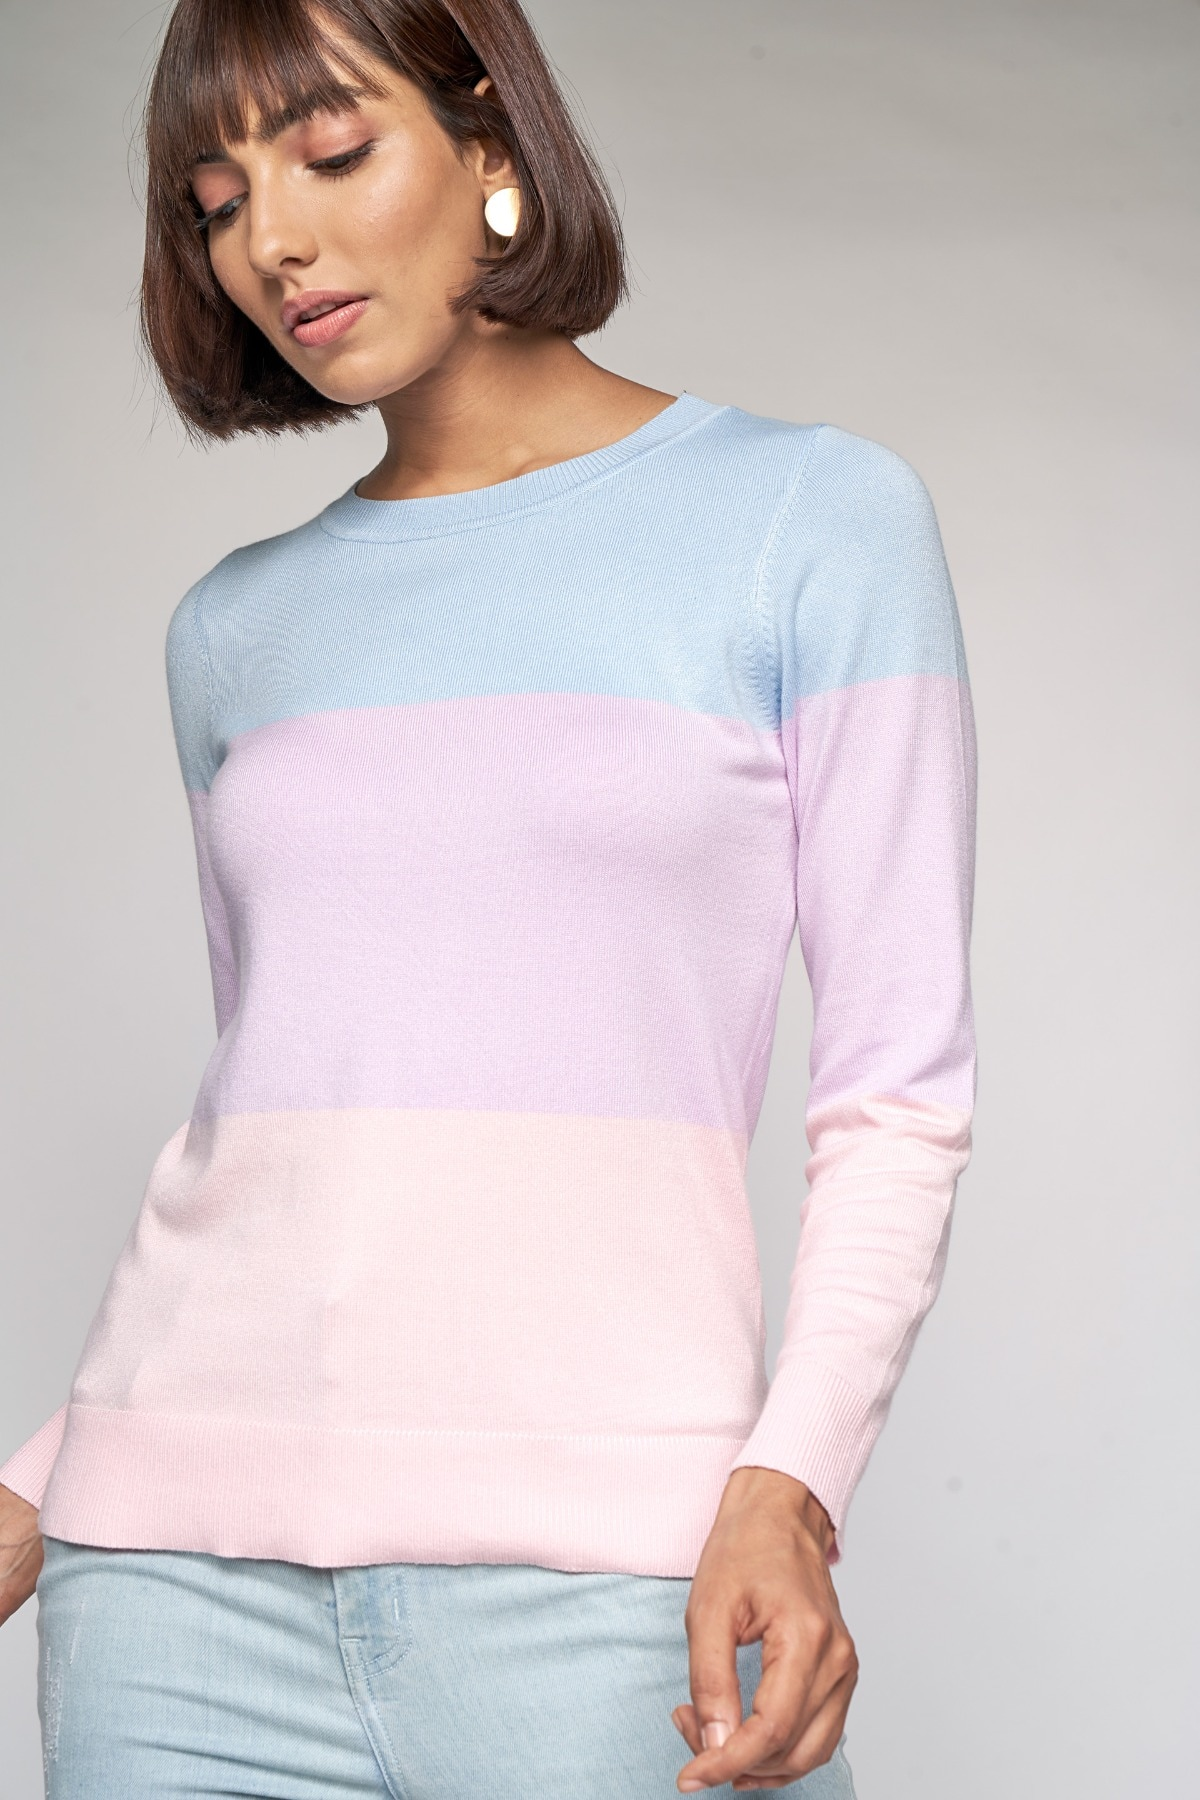 AND   Powder Blue Colorblocked Sweater Top